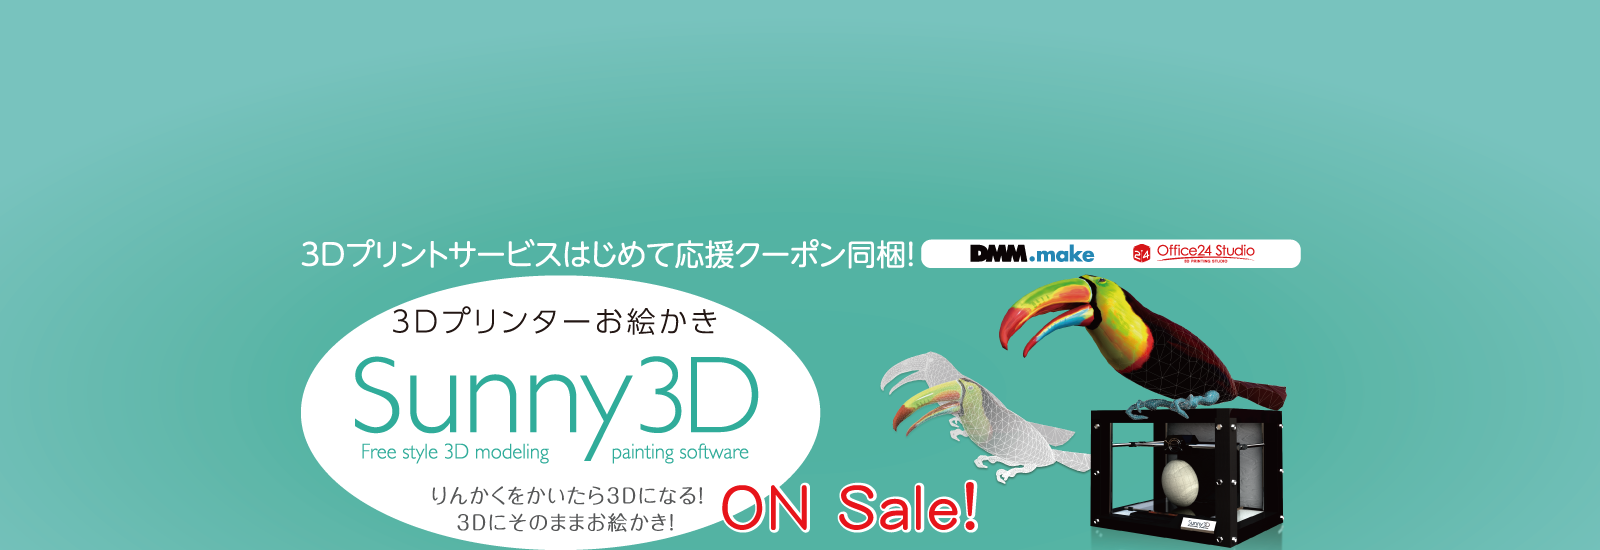 Sunny3D Top Banner